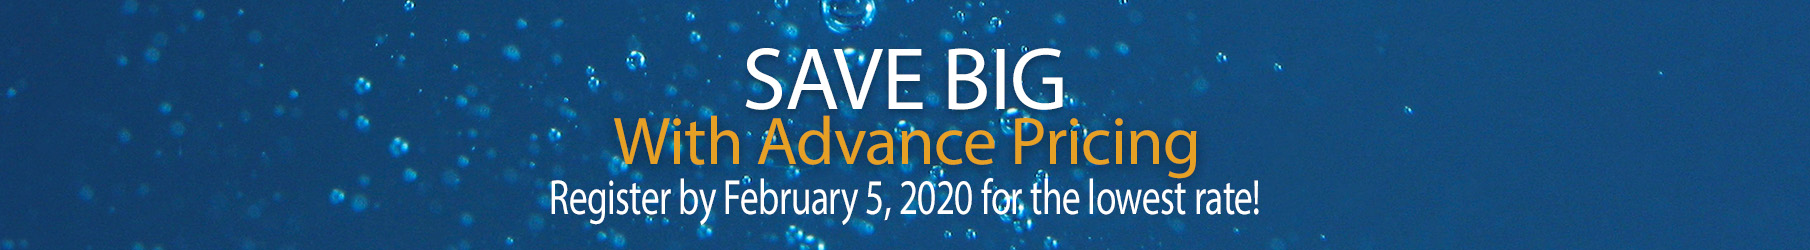 Save big with Advance Pricing